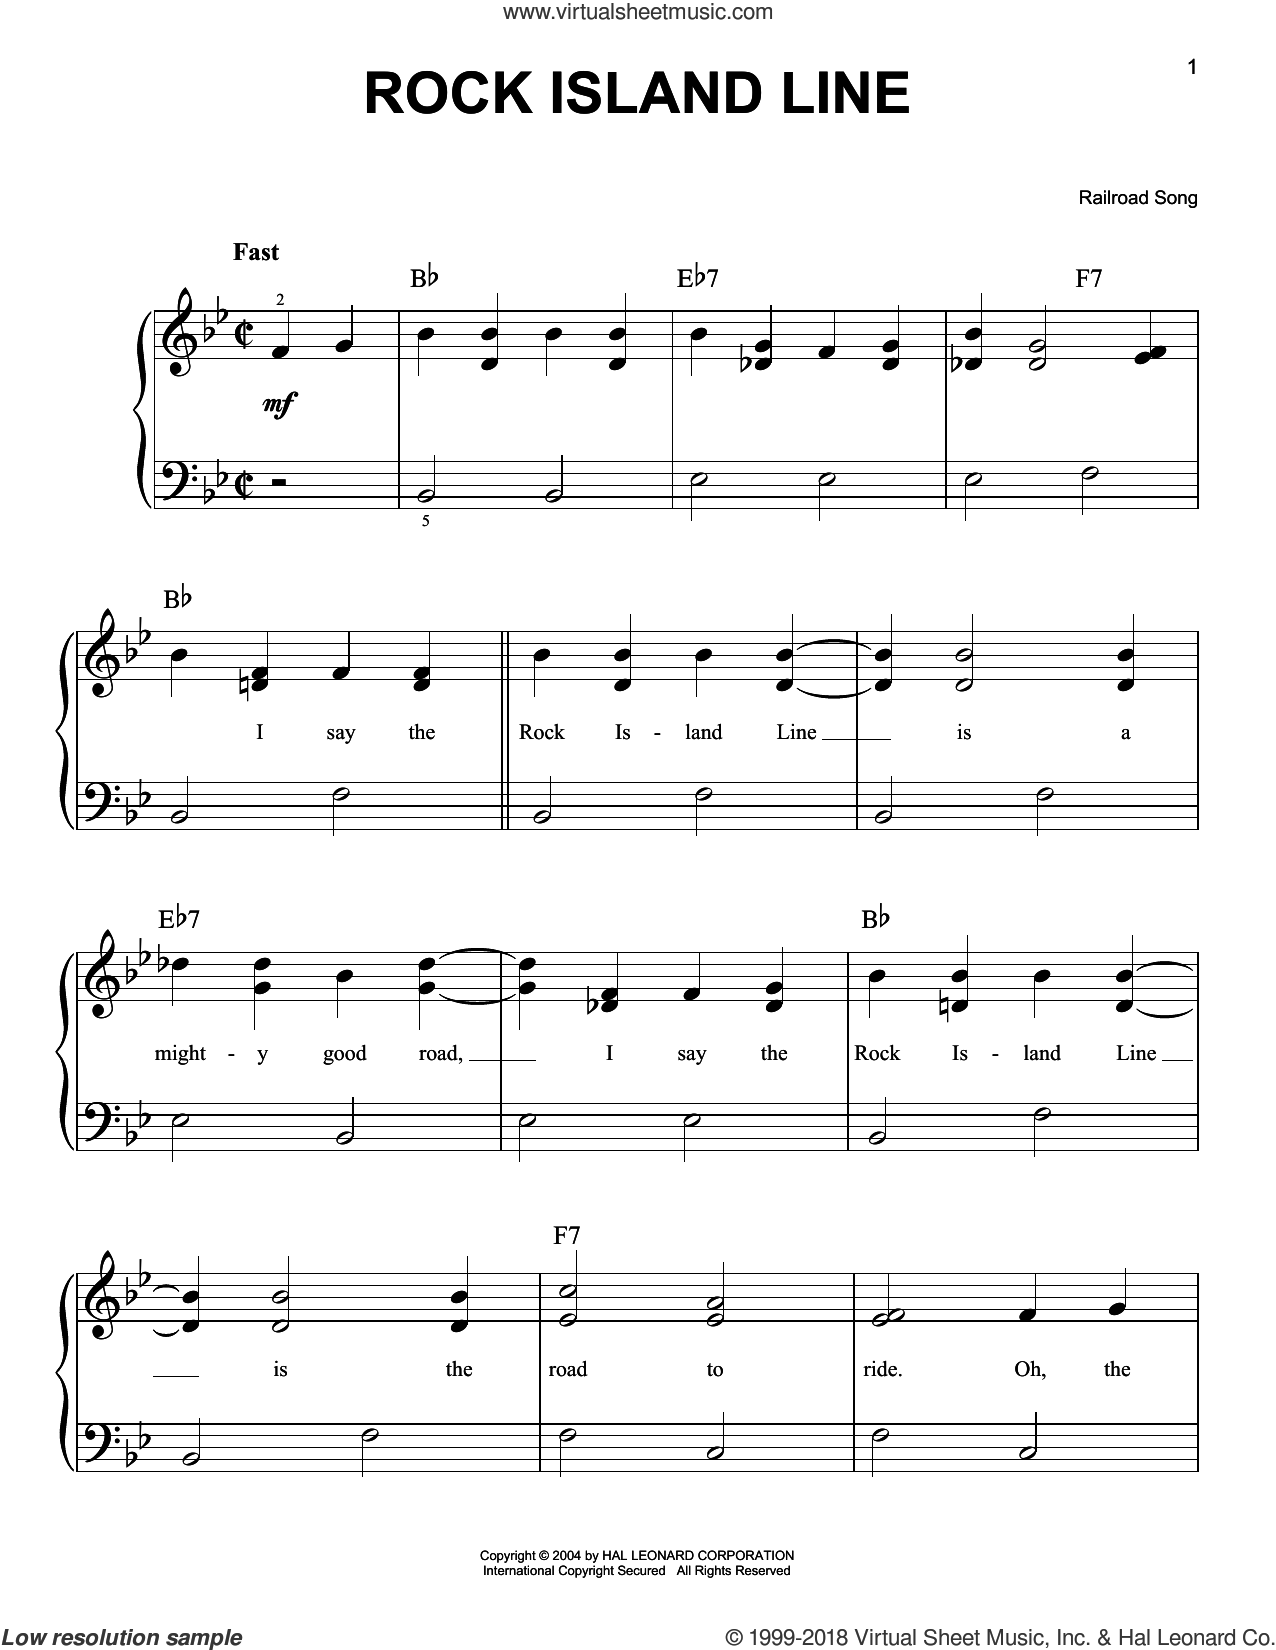 Rock Island Line sheet music for piano solo (chords)